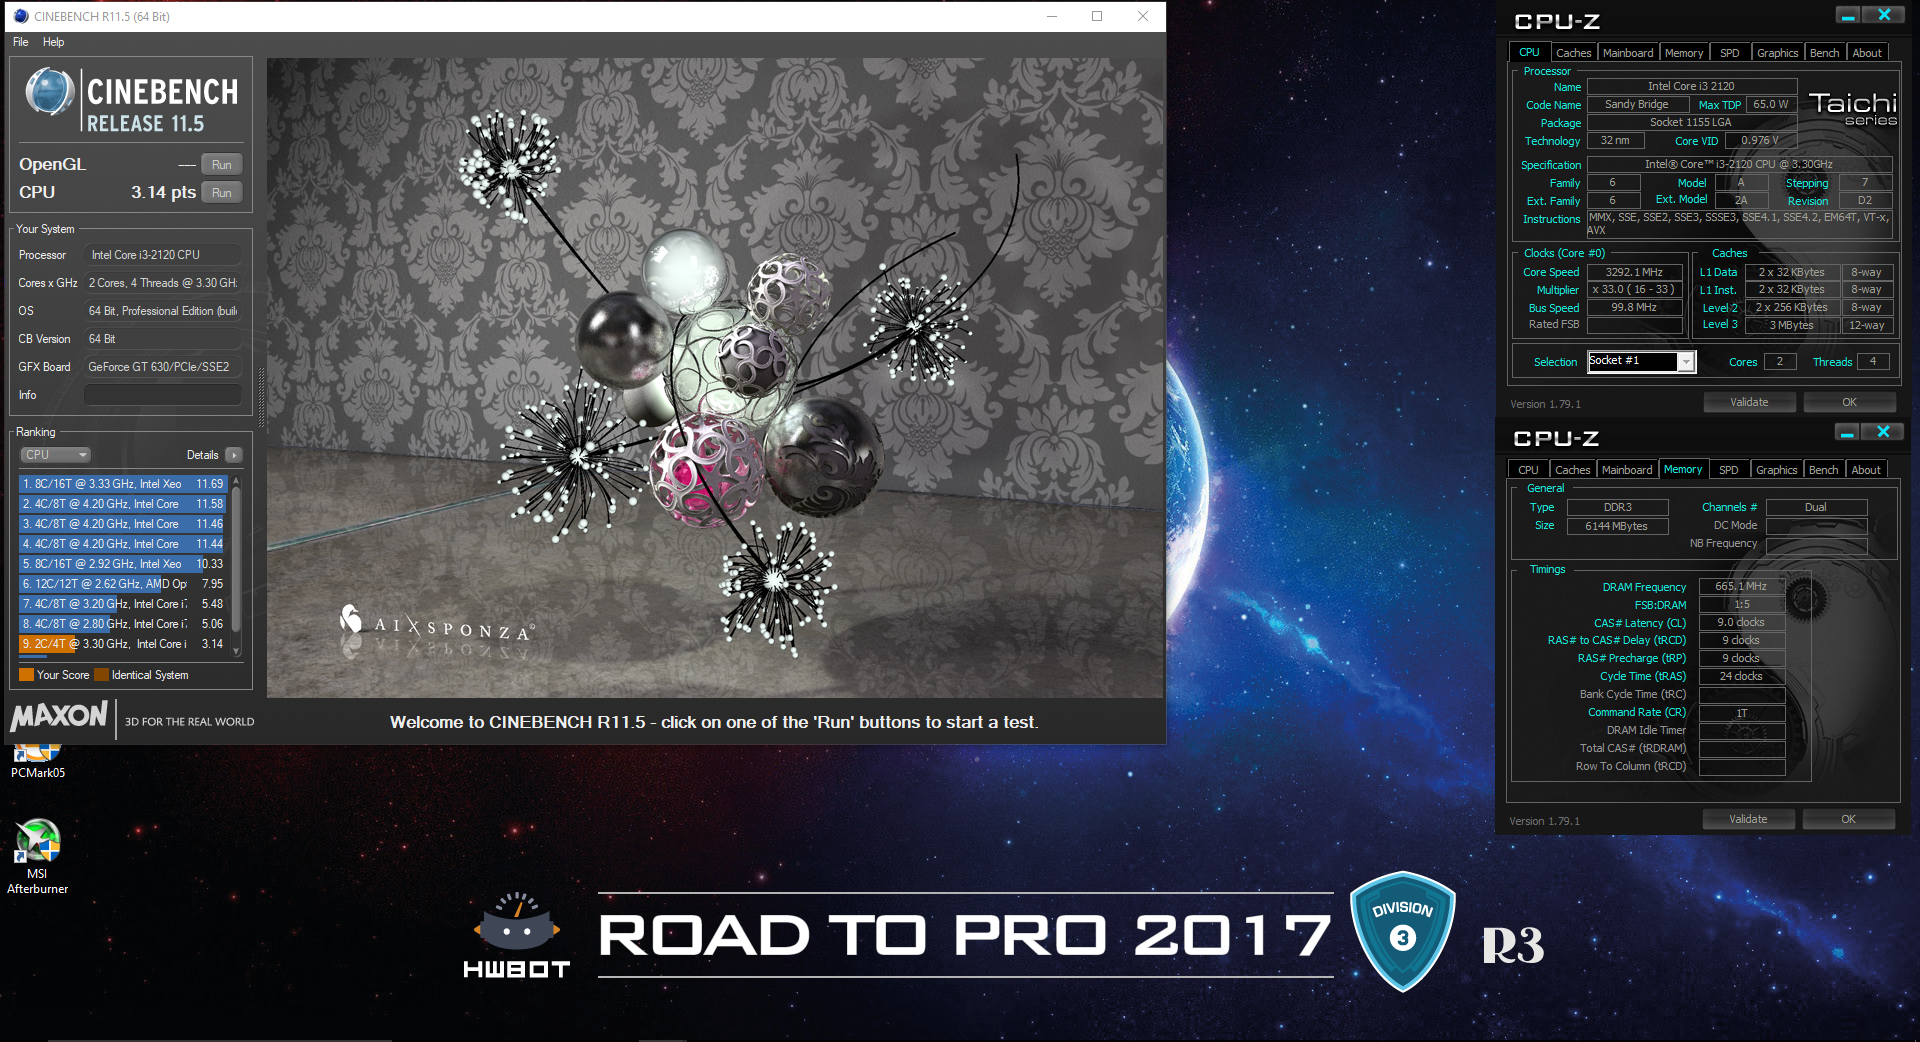 Serpentxsfs Cinebench R115 Score 314 Points With A Core I3 2120